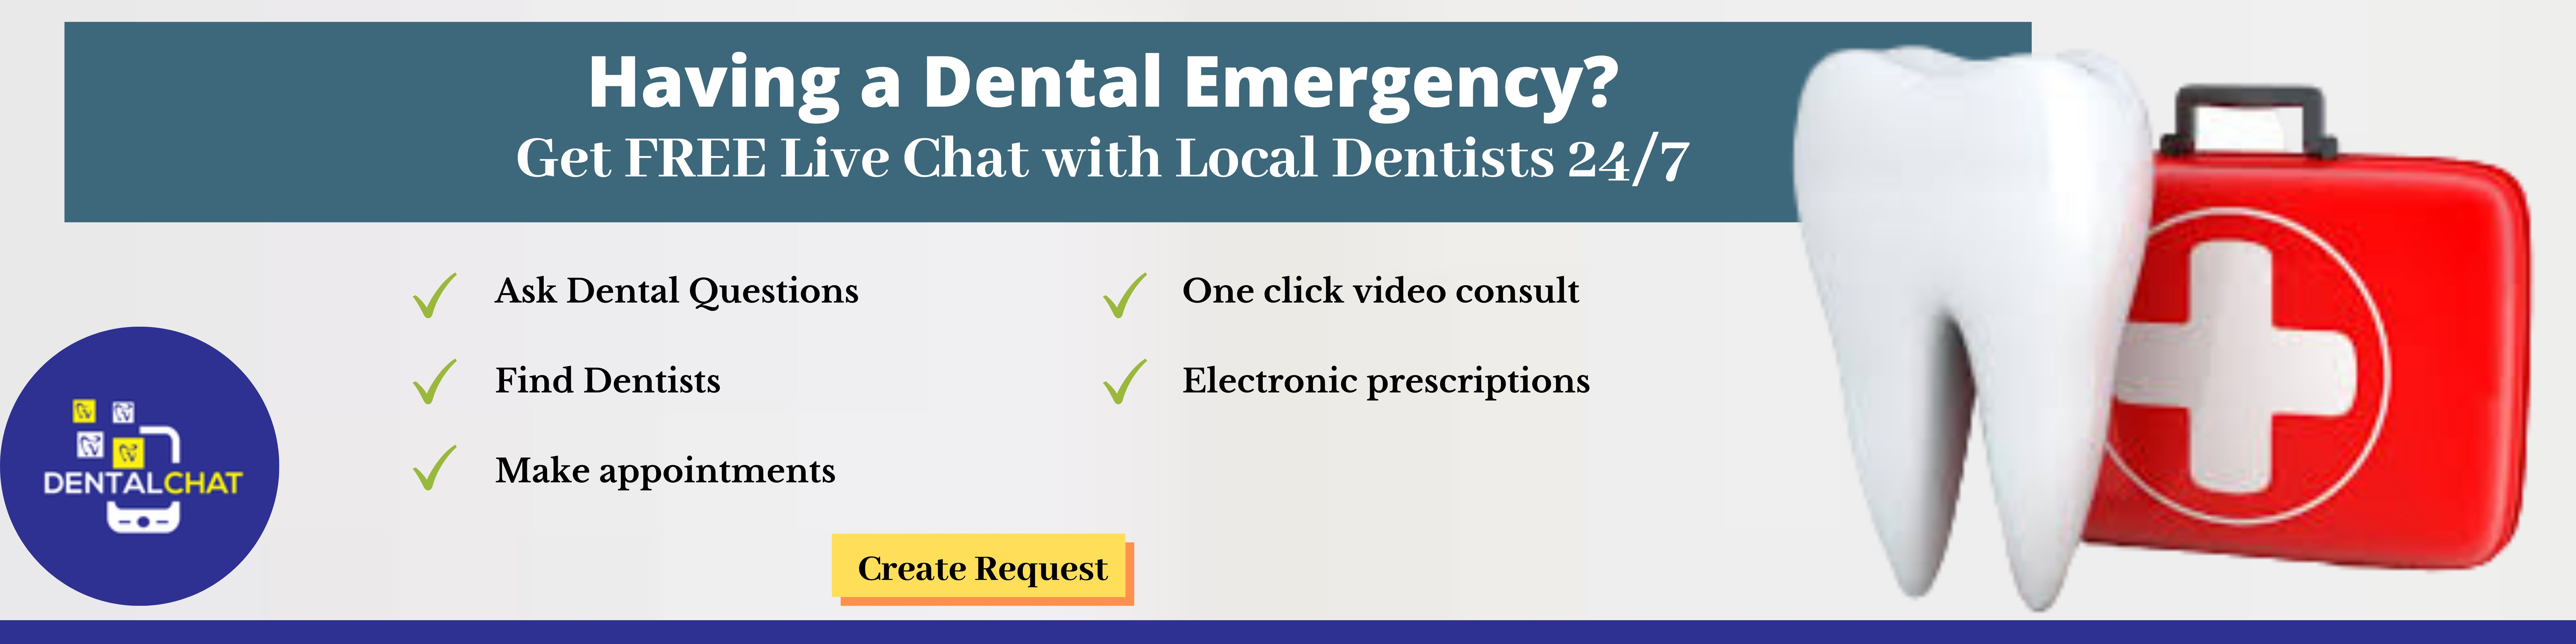 Find best local emergency dentist information, free local dentists teledentistry consult online, tooth problems info blog